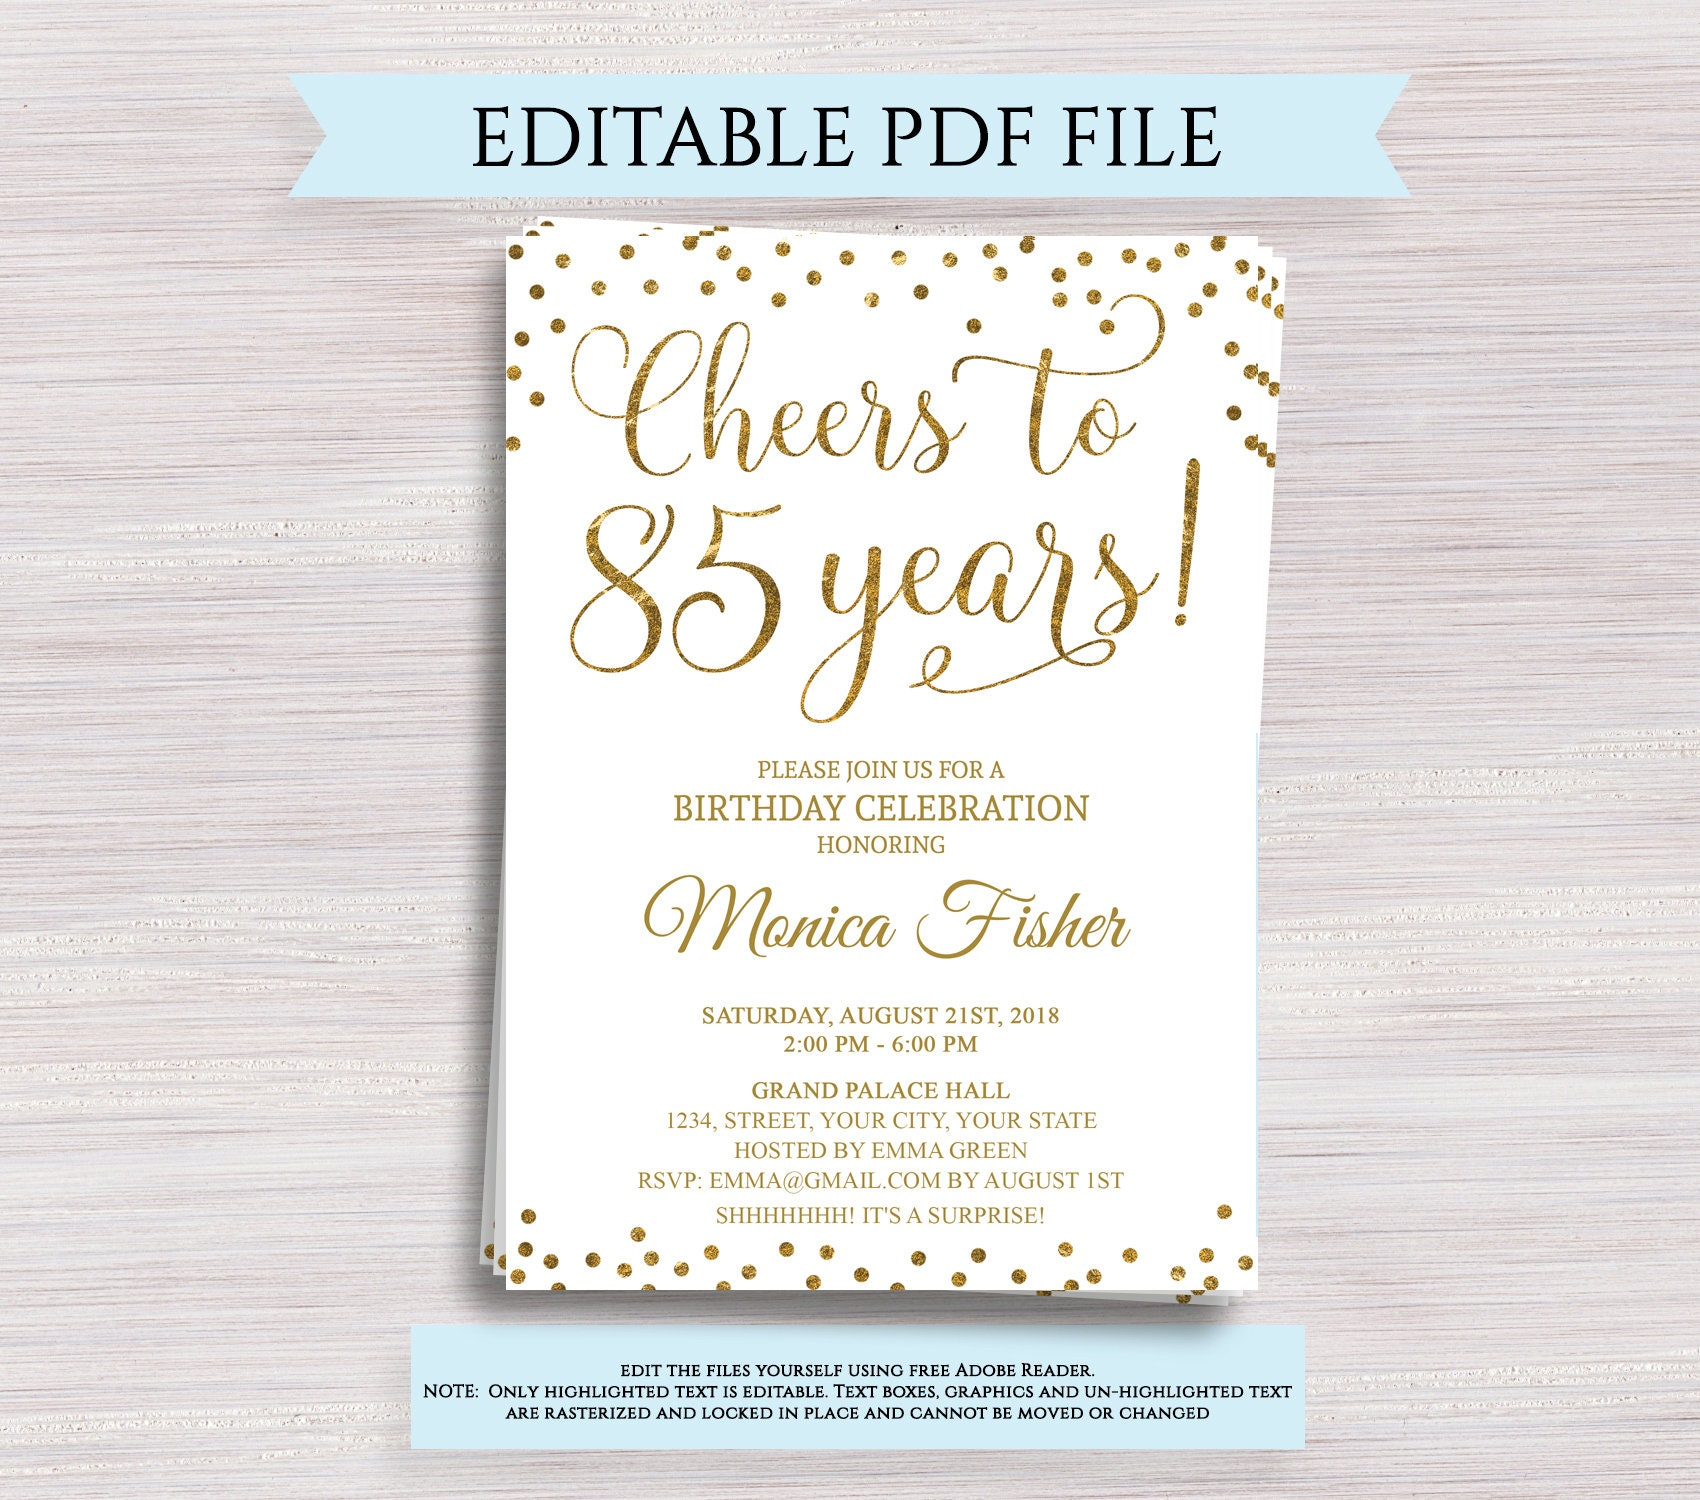 Editable 85th Birthday Party Invitation Template Cheers To 85